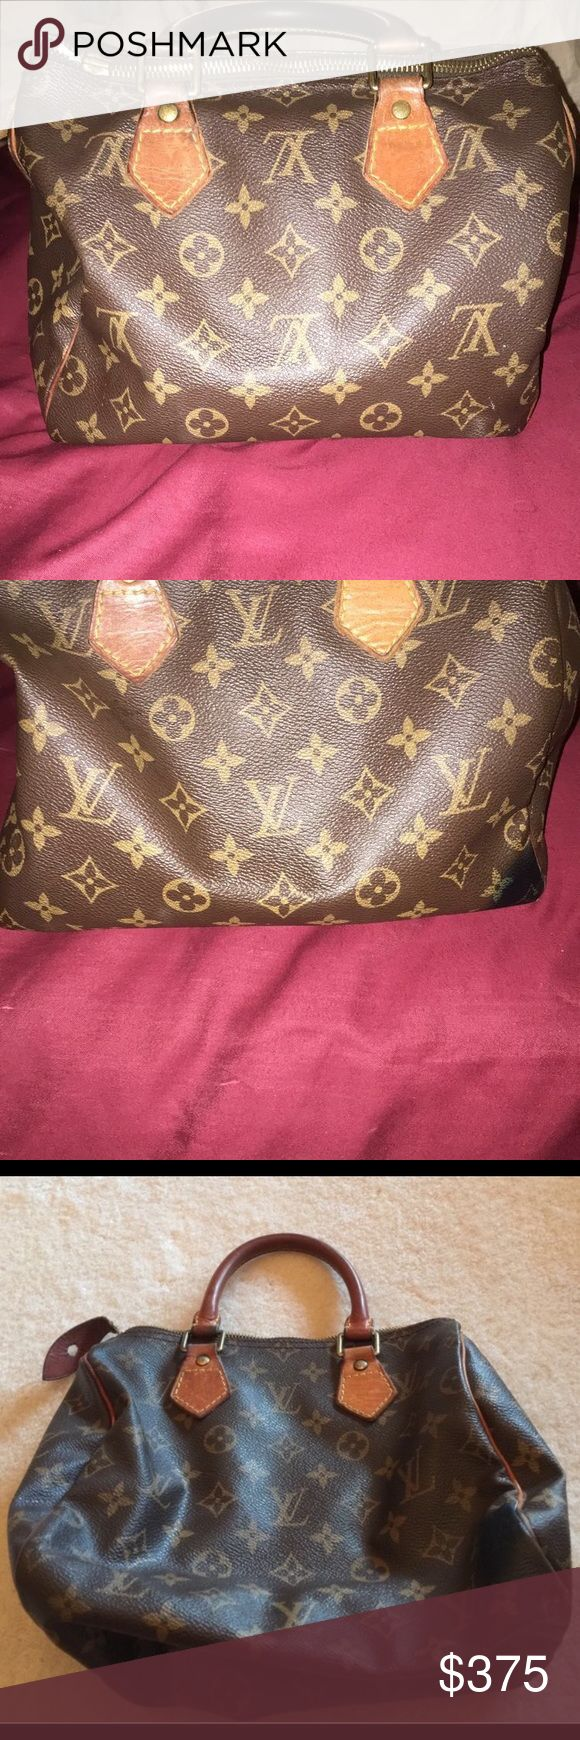 100% Authentic Louis Vuitton Speedy 25 Bag is in great condition besides what's shown in the pics. Purse also is 100% authentic, and has been authenticated. There is also a small pin mark on the side of the purse but isn't visible. Don't miss the chance to own a beautiful bag. Open to reasonable offers, no trades❌ Louis Vuitton Bags Totes